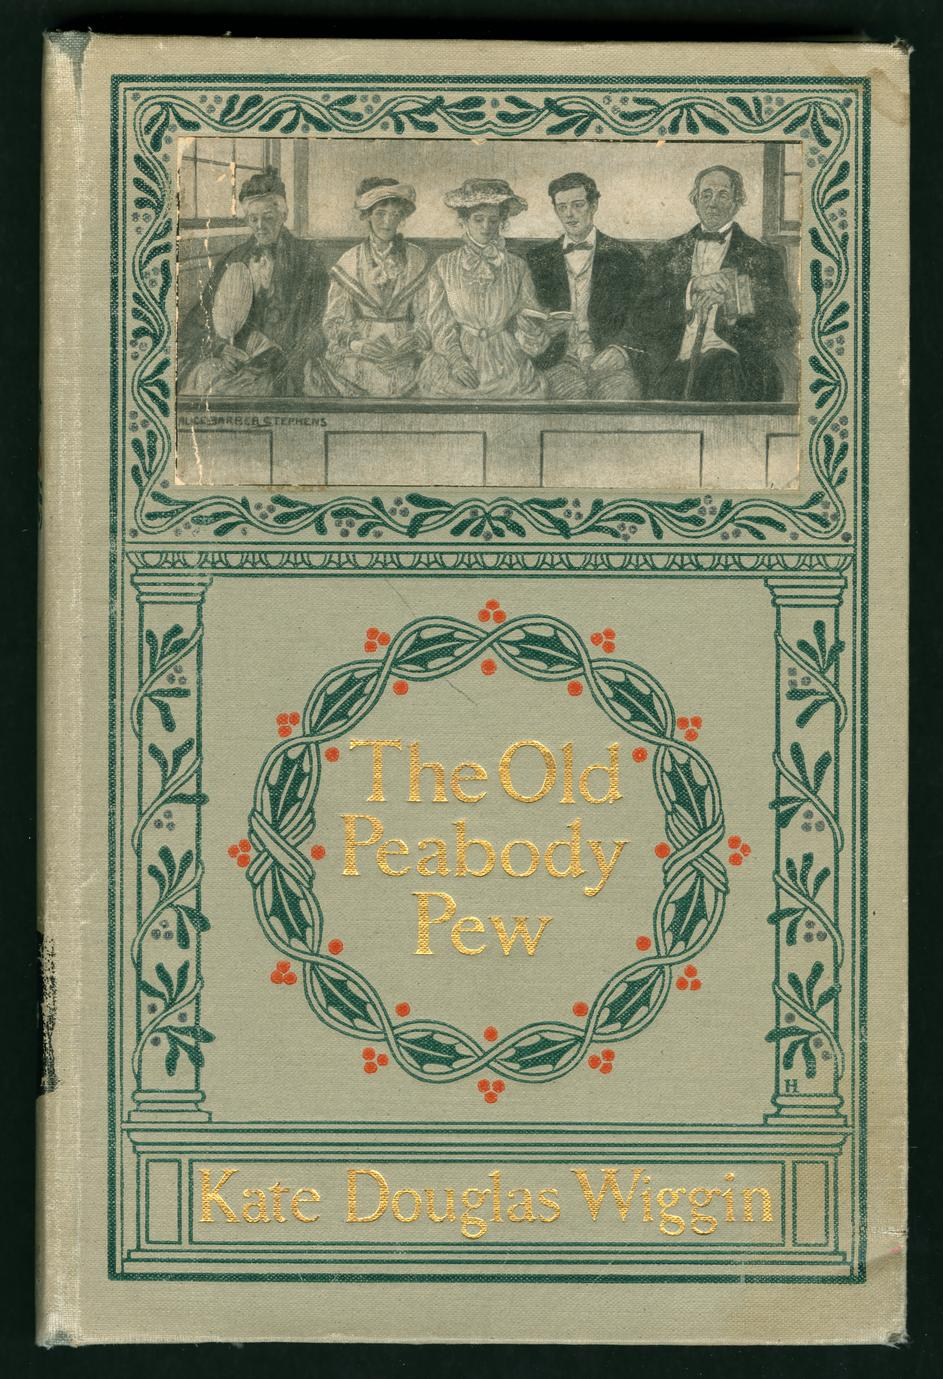 The old Peabody pew : a Christmas romance of a country church (1 of 3)